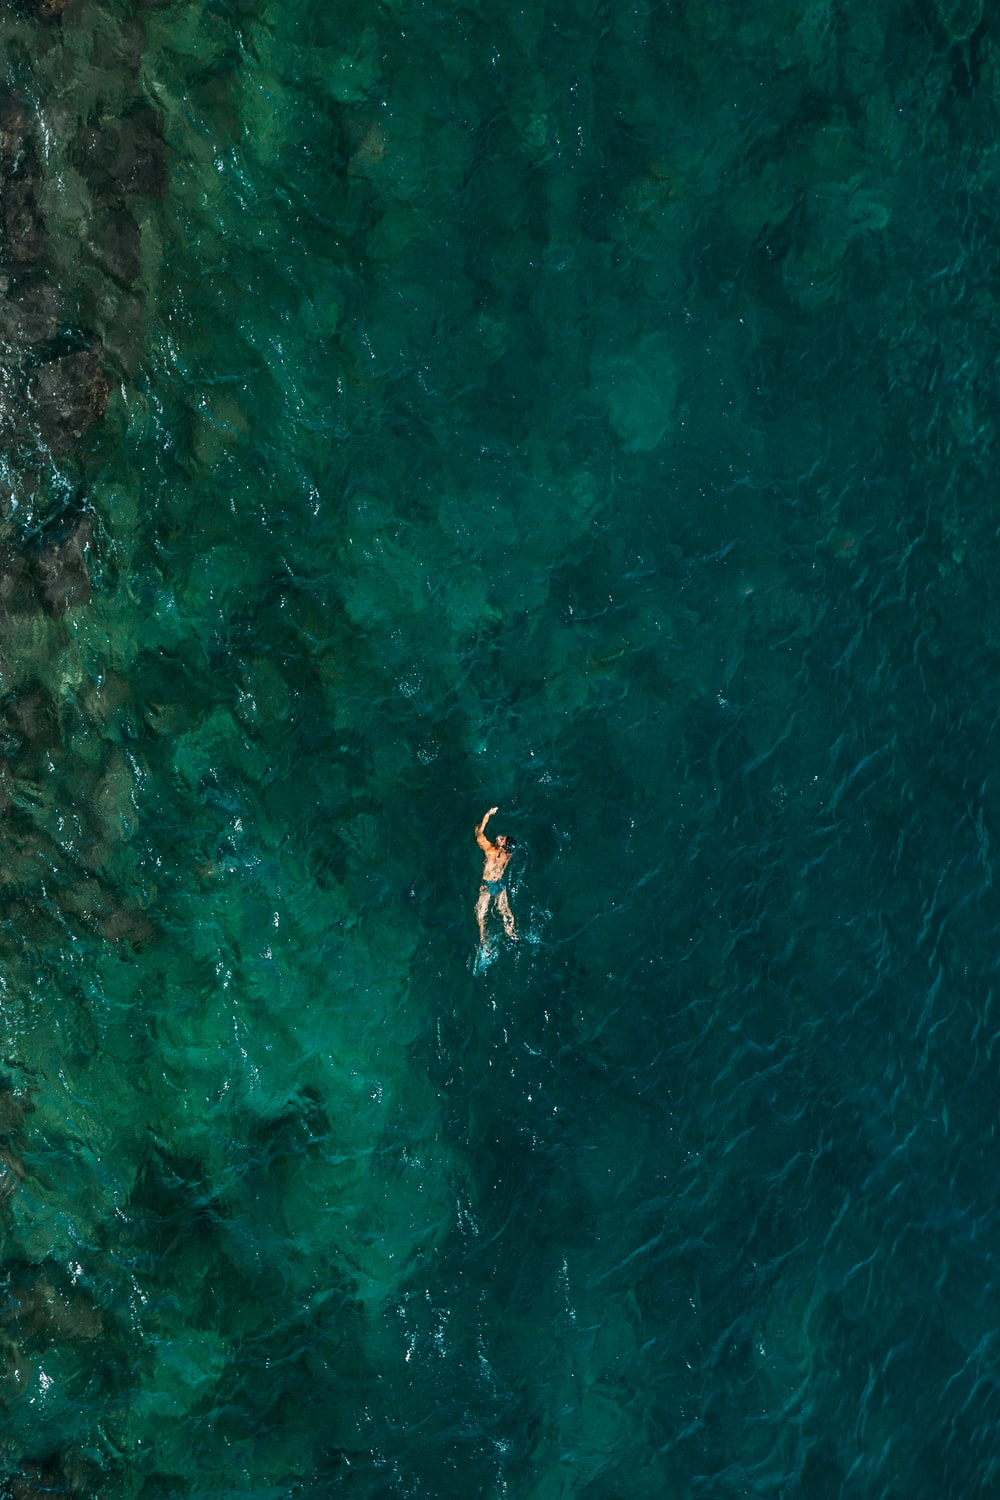 bird's-eye photography of person on body of water